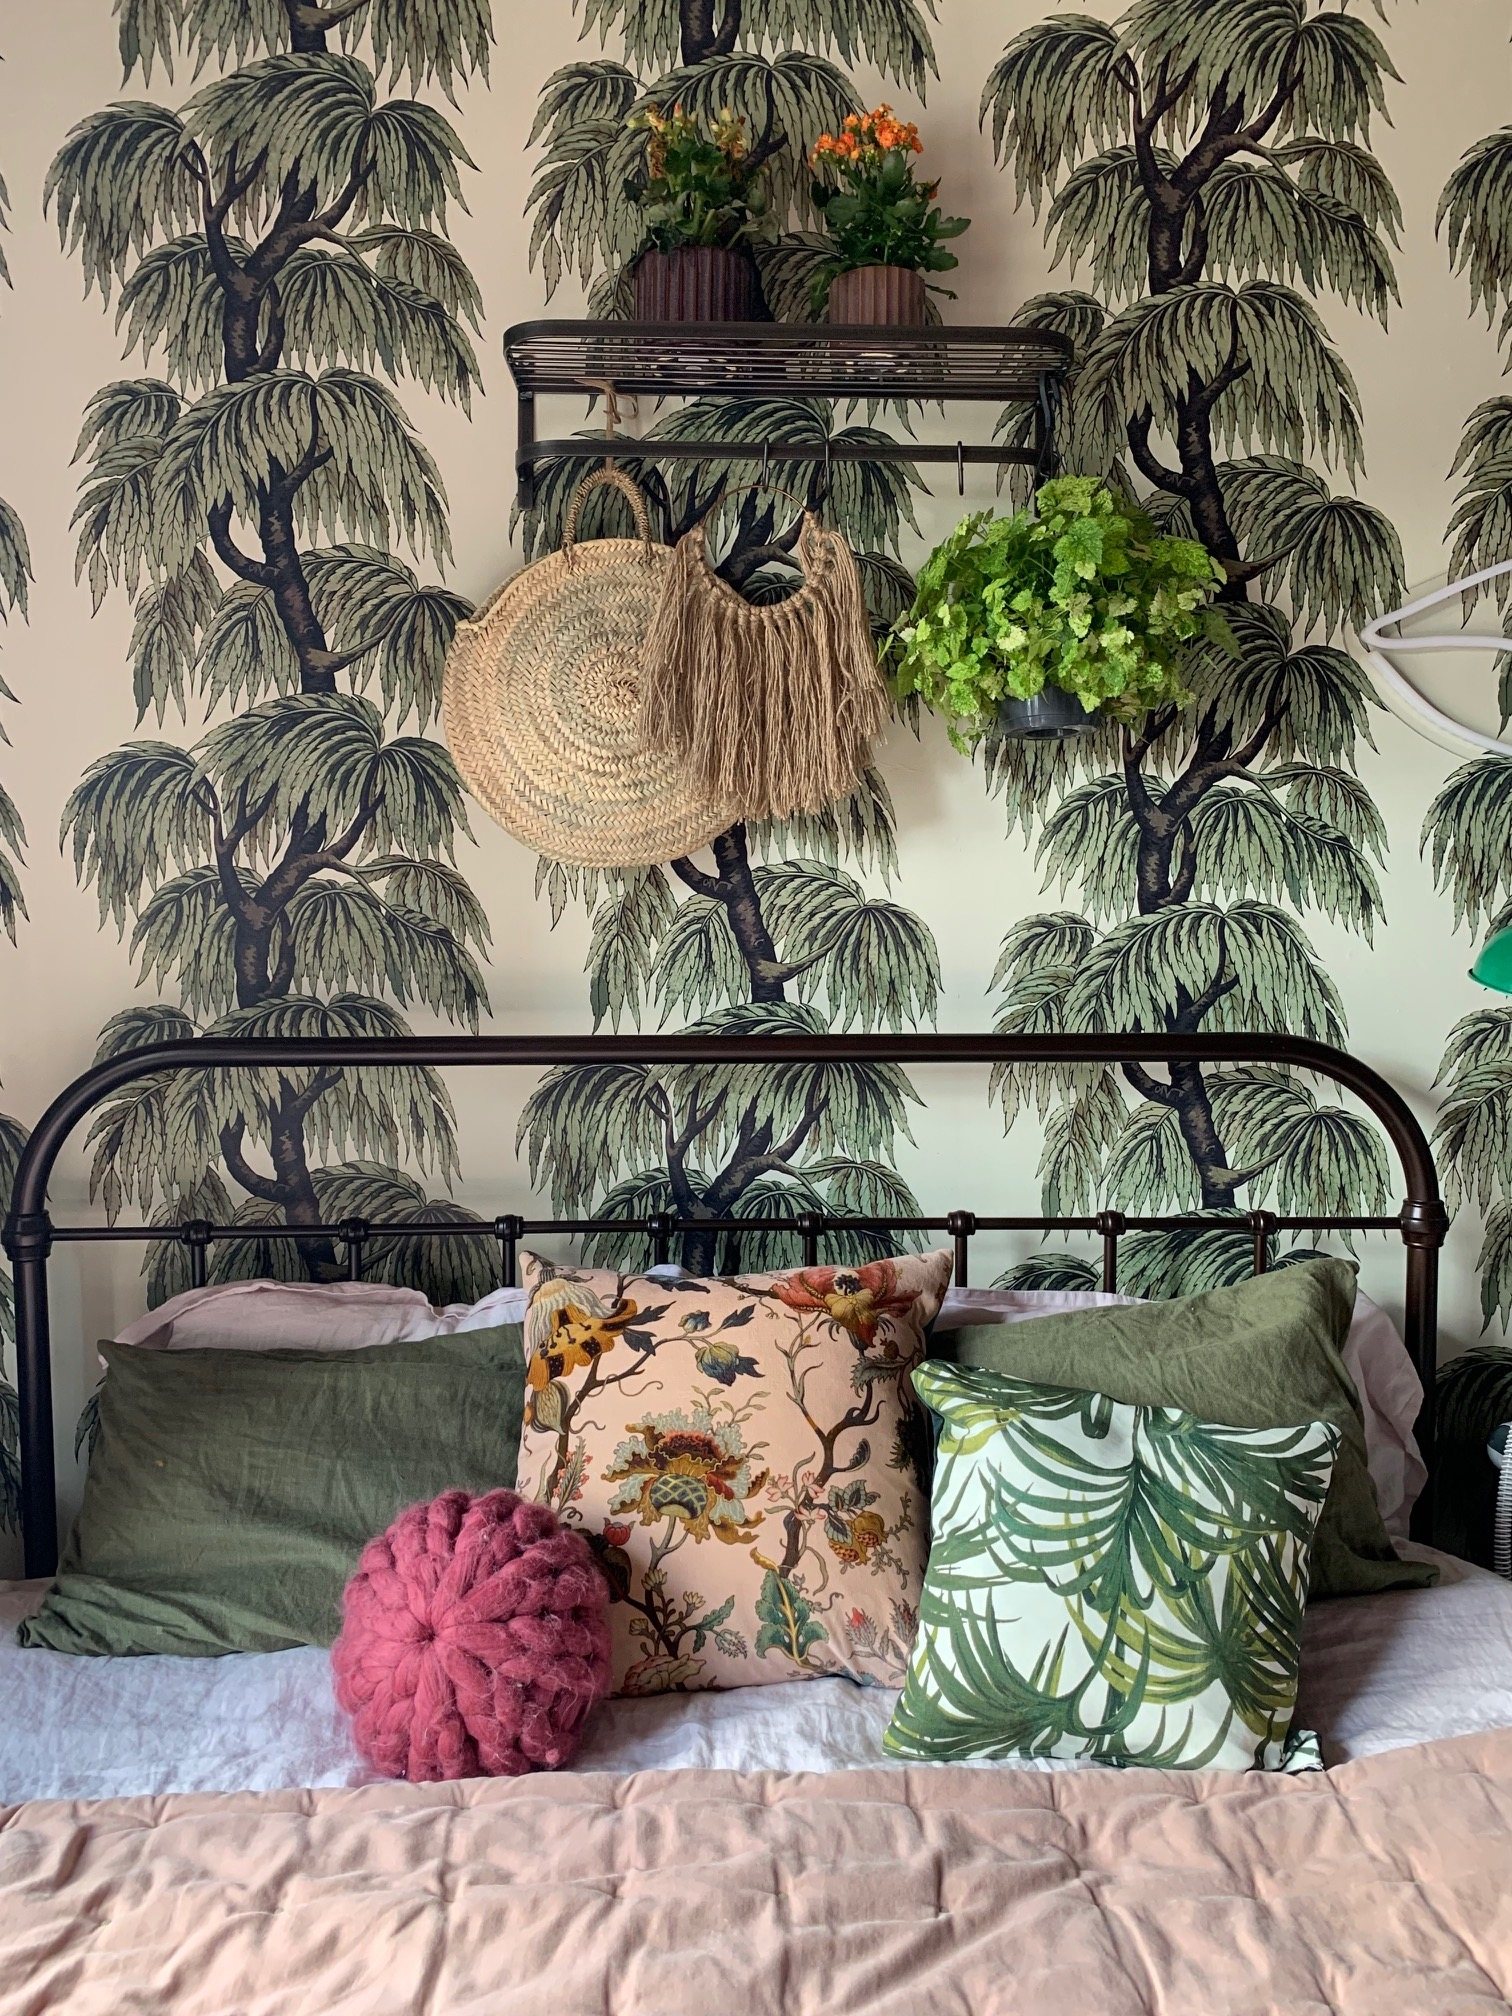 Fifty Shades of Green – the more calming, interiors-based sequel